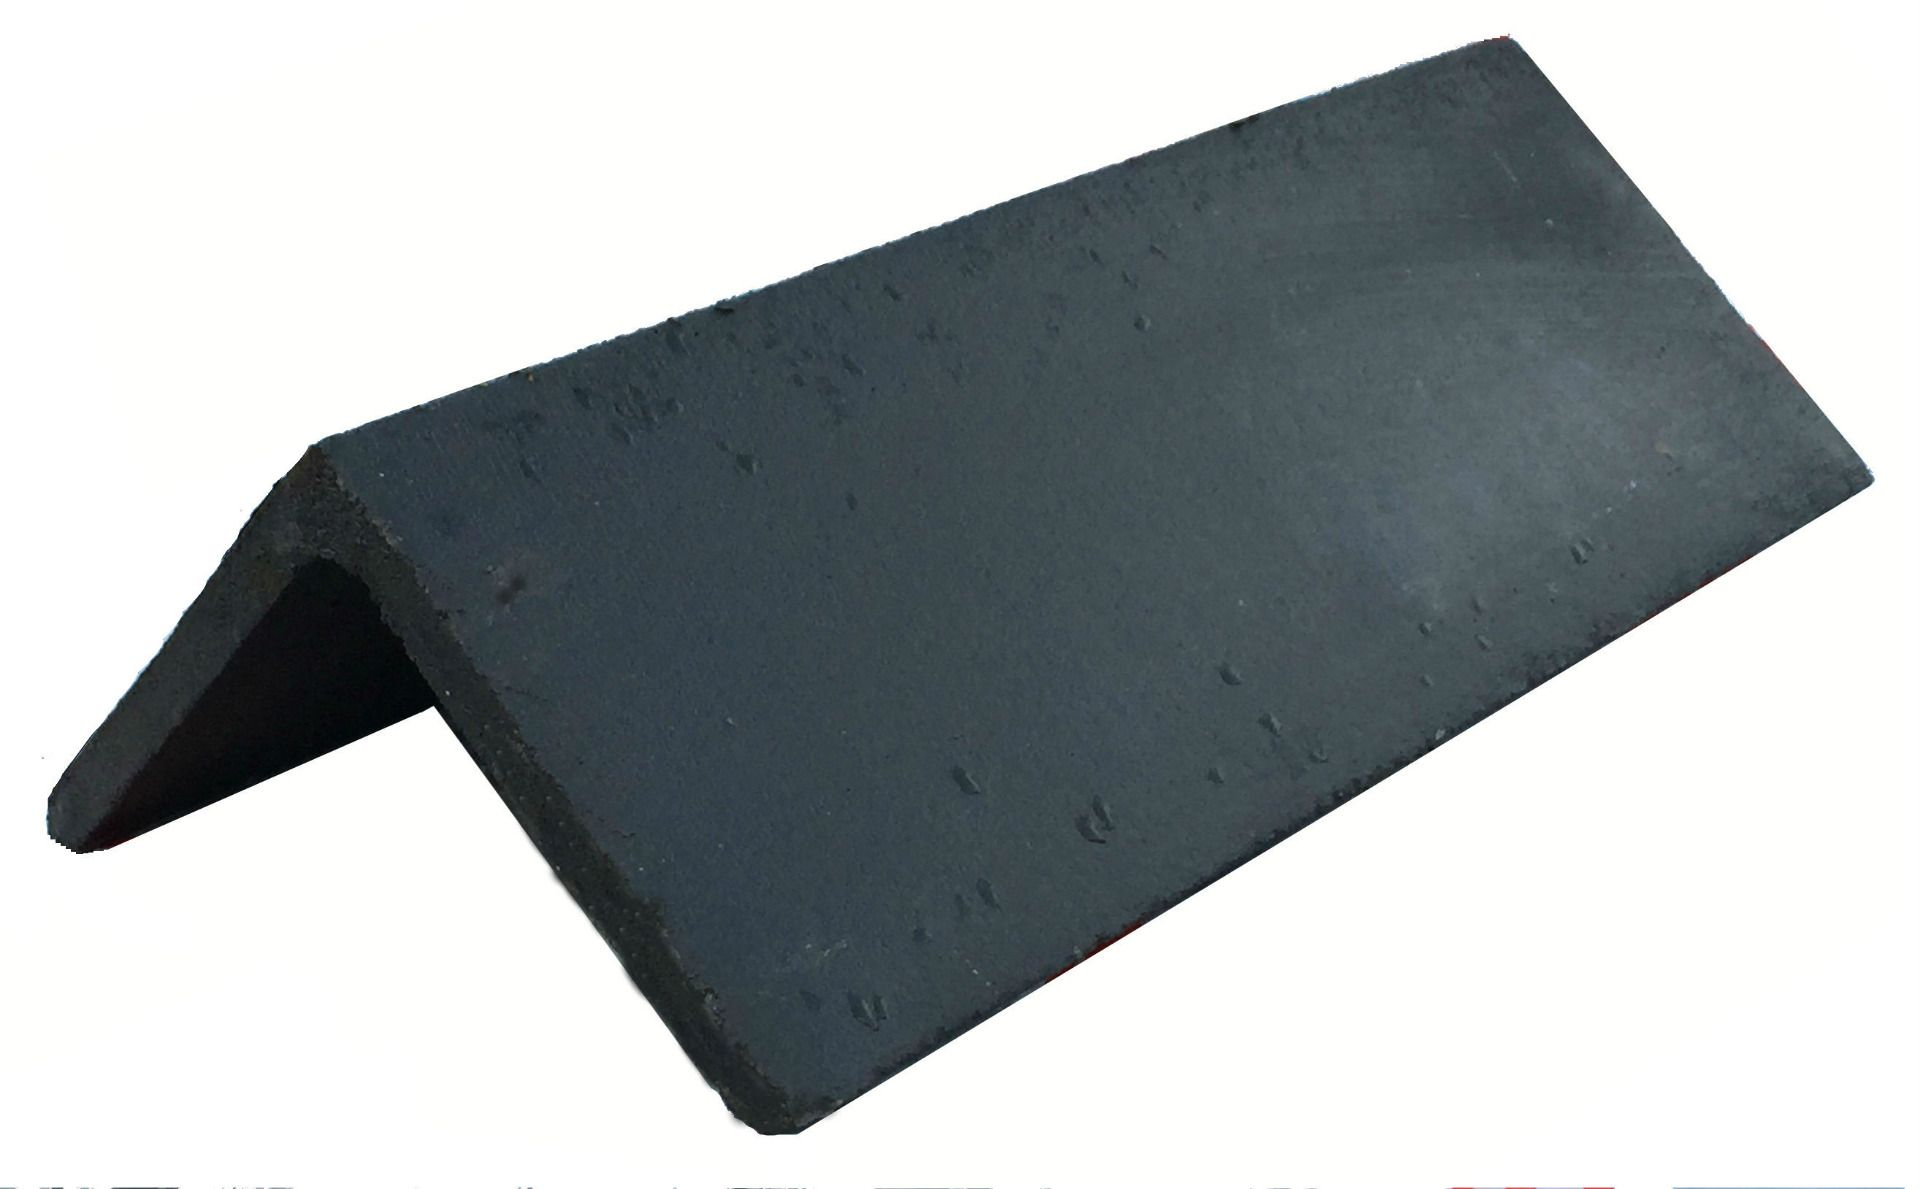 Plain Angle Concrete Ridge Tile: 110 degree | Ashbrook Roofing